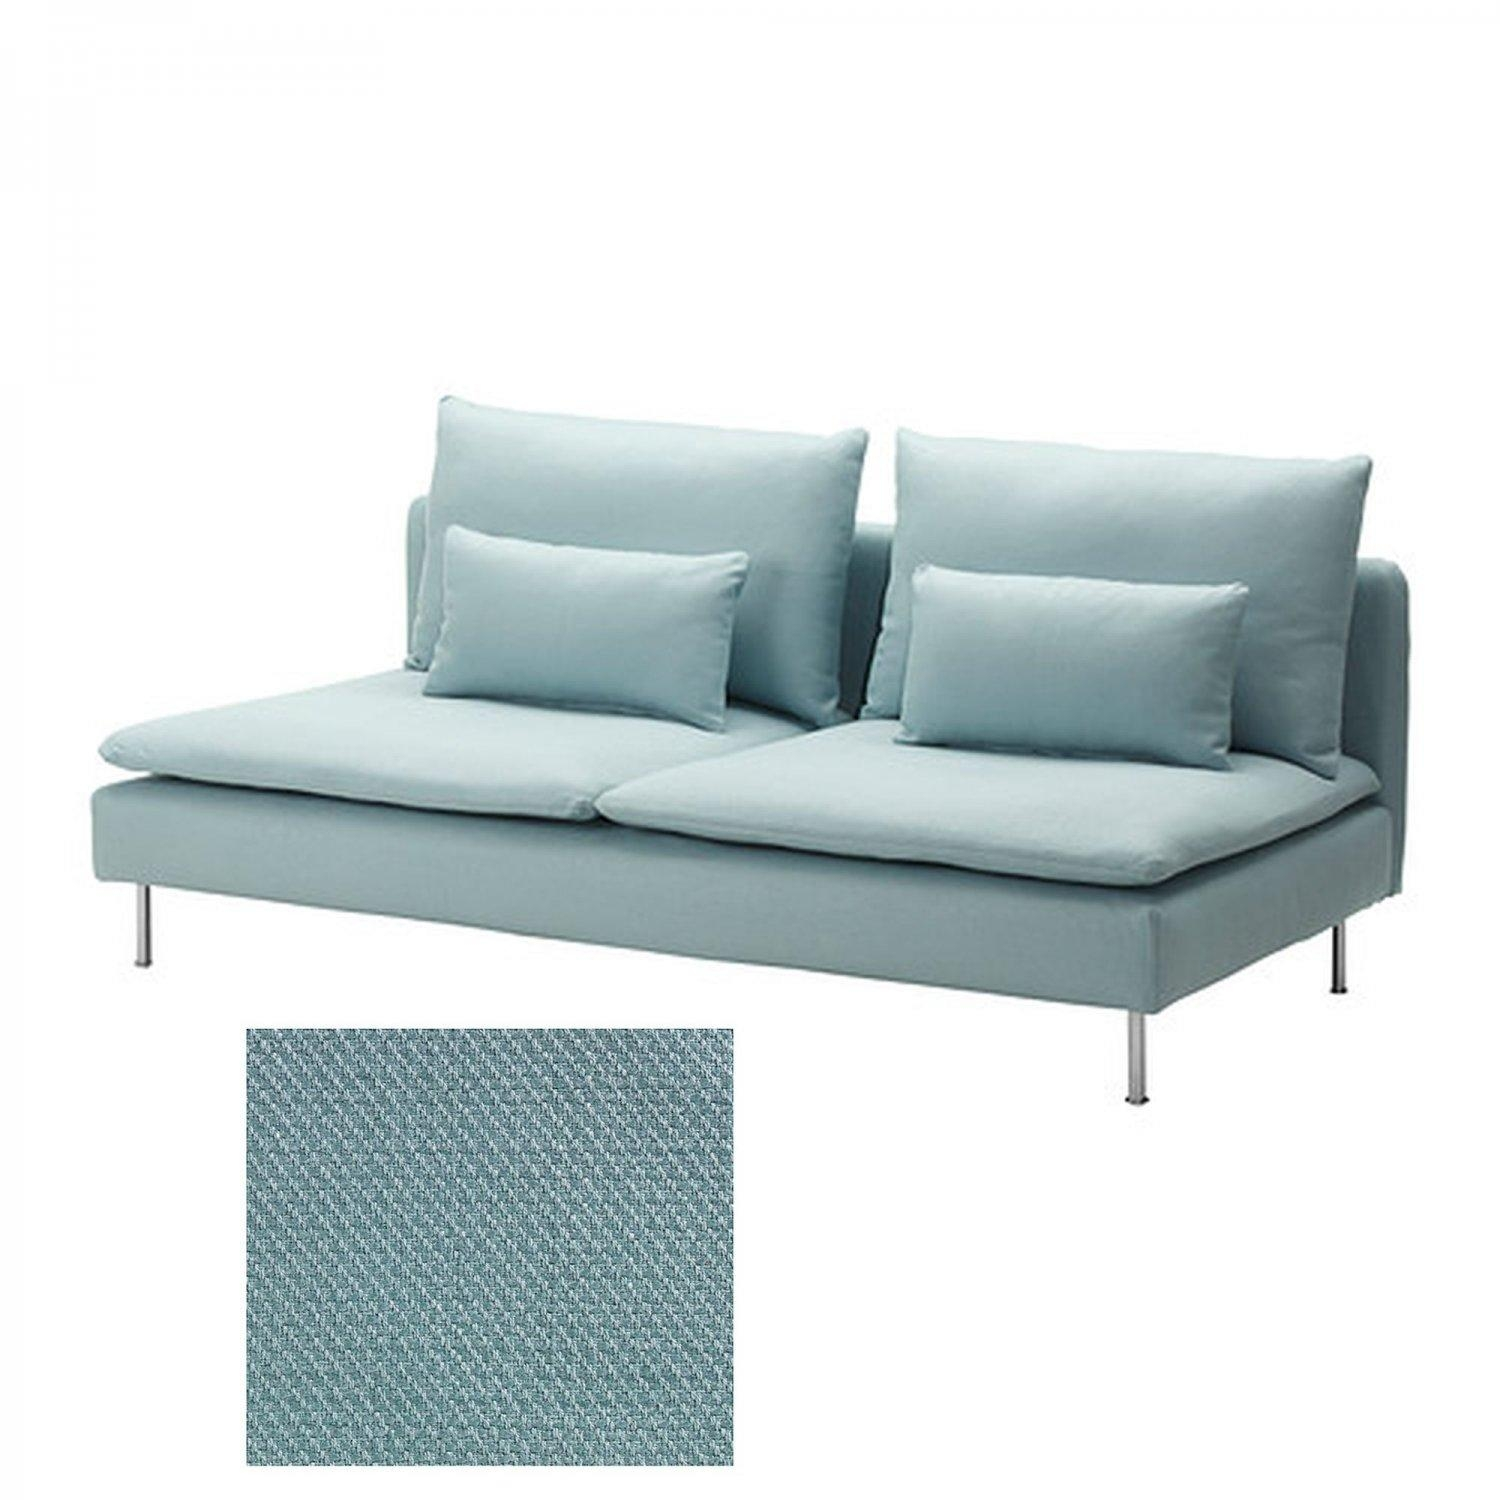 Turquoise Loveseat Slipcover Images – Reverse Search Pertaining To Turquoise Sofa Covers (View 18 of 20)